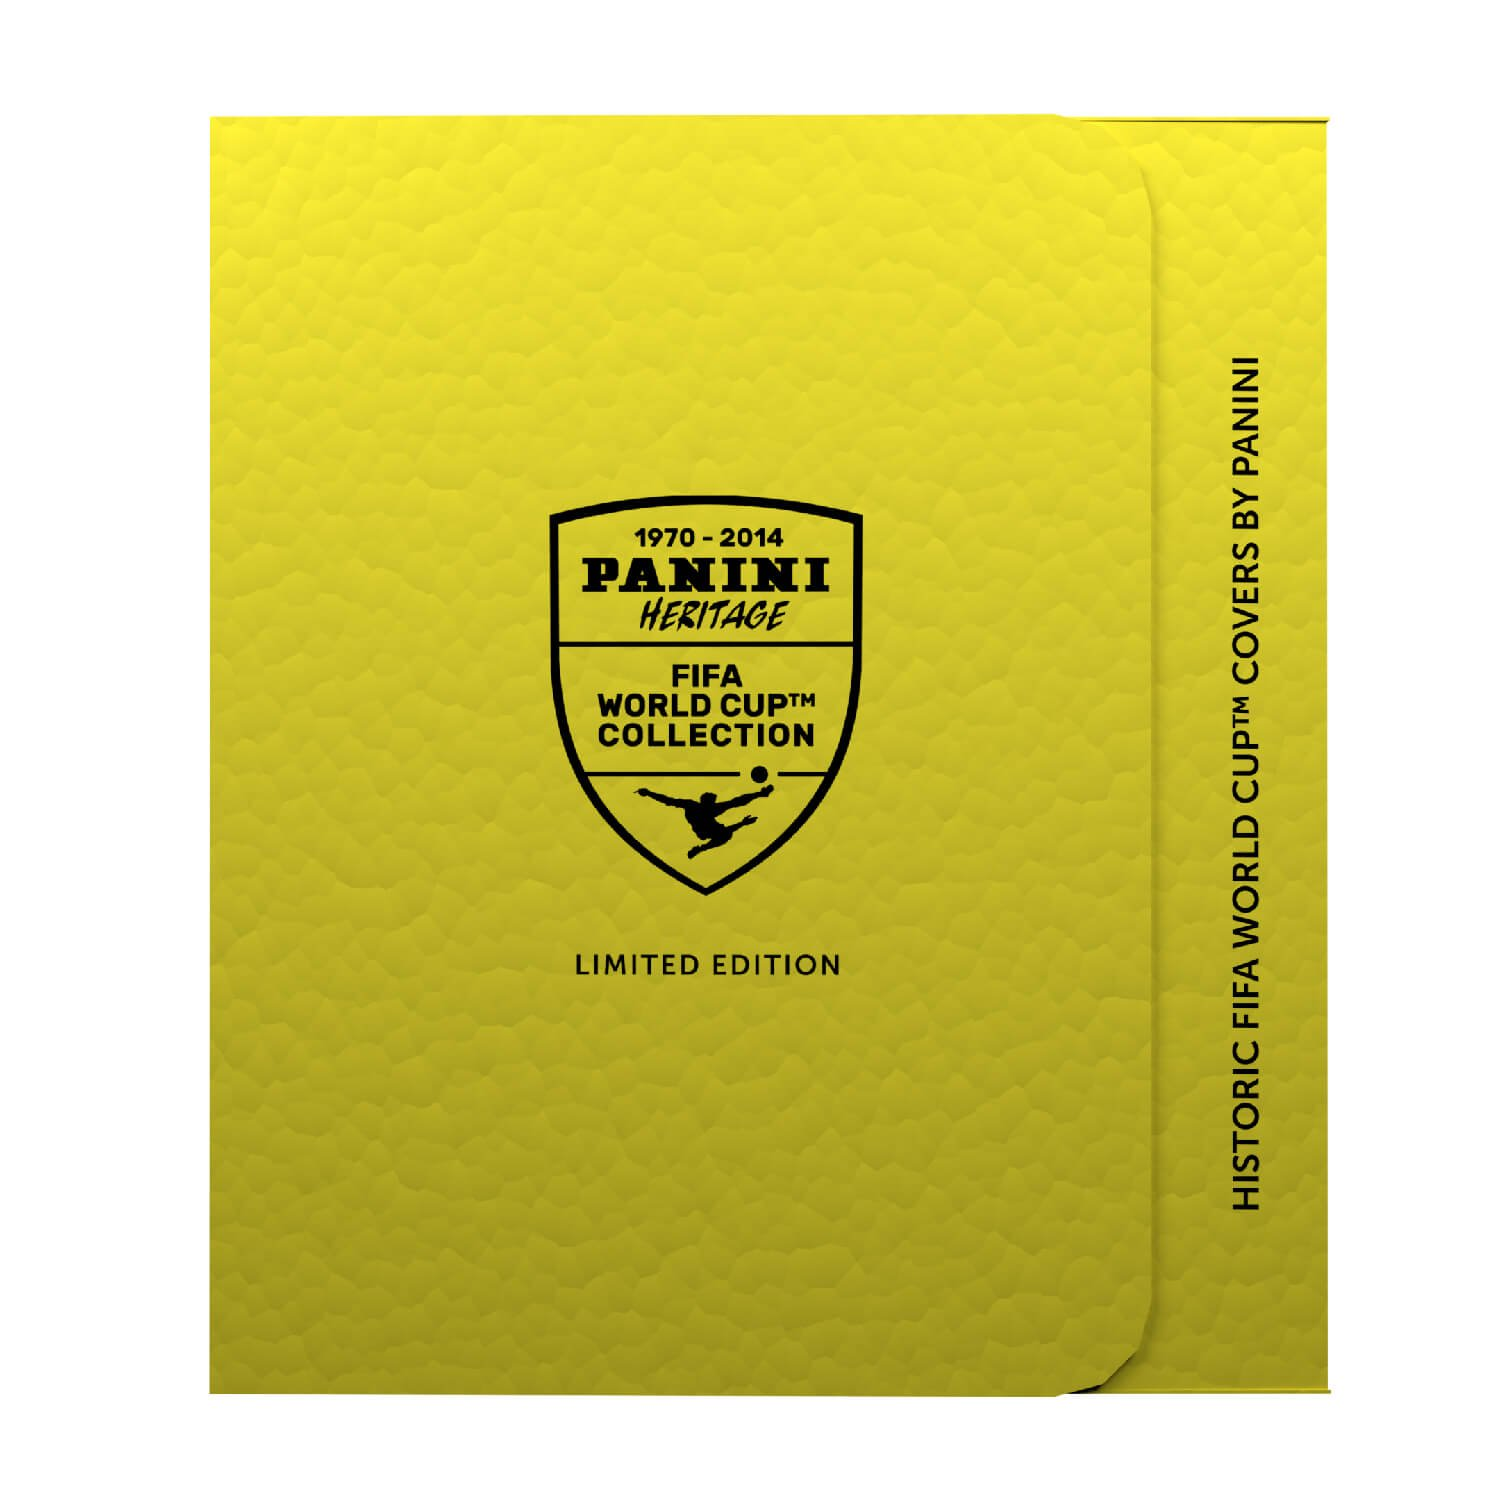 7f508ad4a Panini Heritage FIFA World Cup Lithographic Prints  Amazon.co.uk  Toys    Games